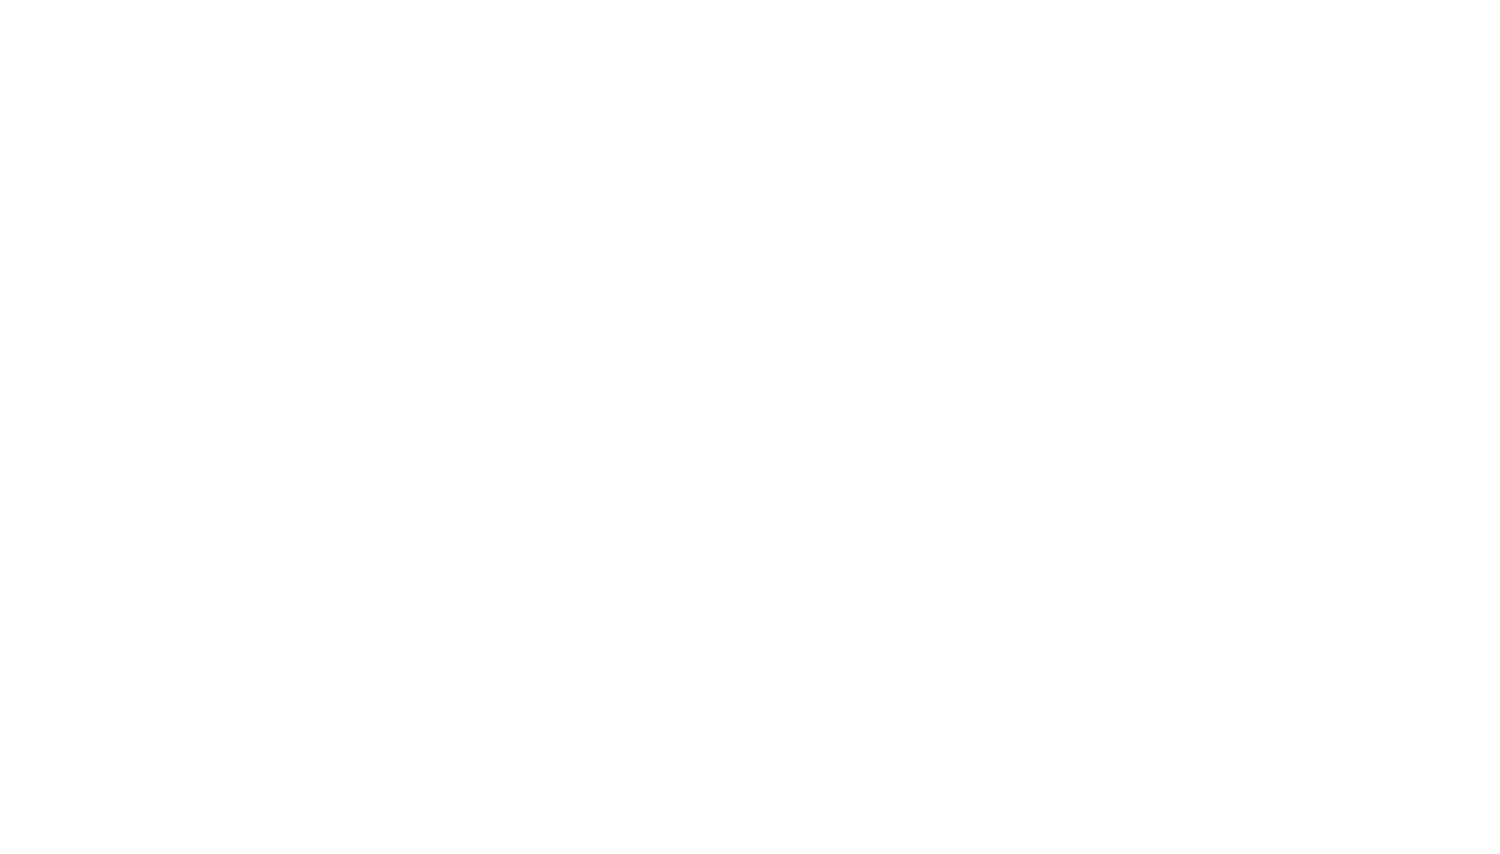 Balance Chiropractic & Wellness Center